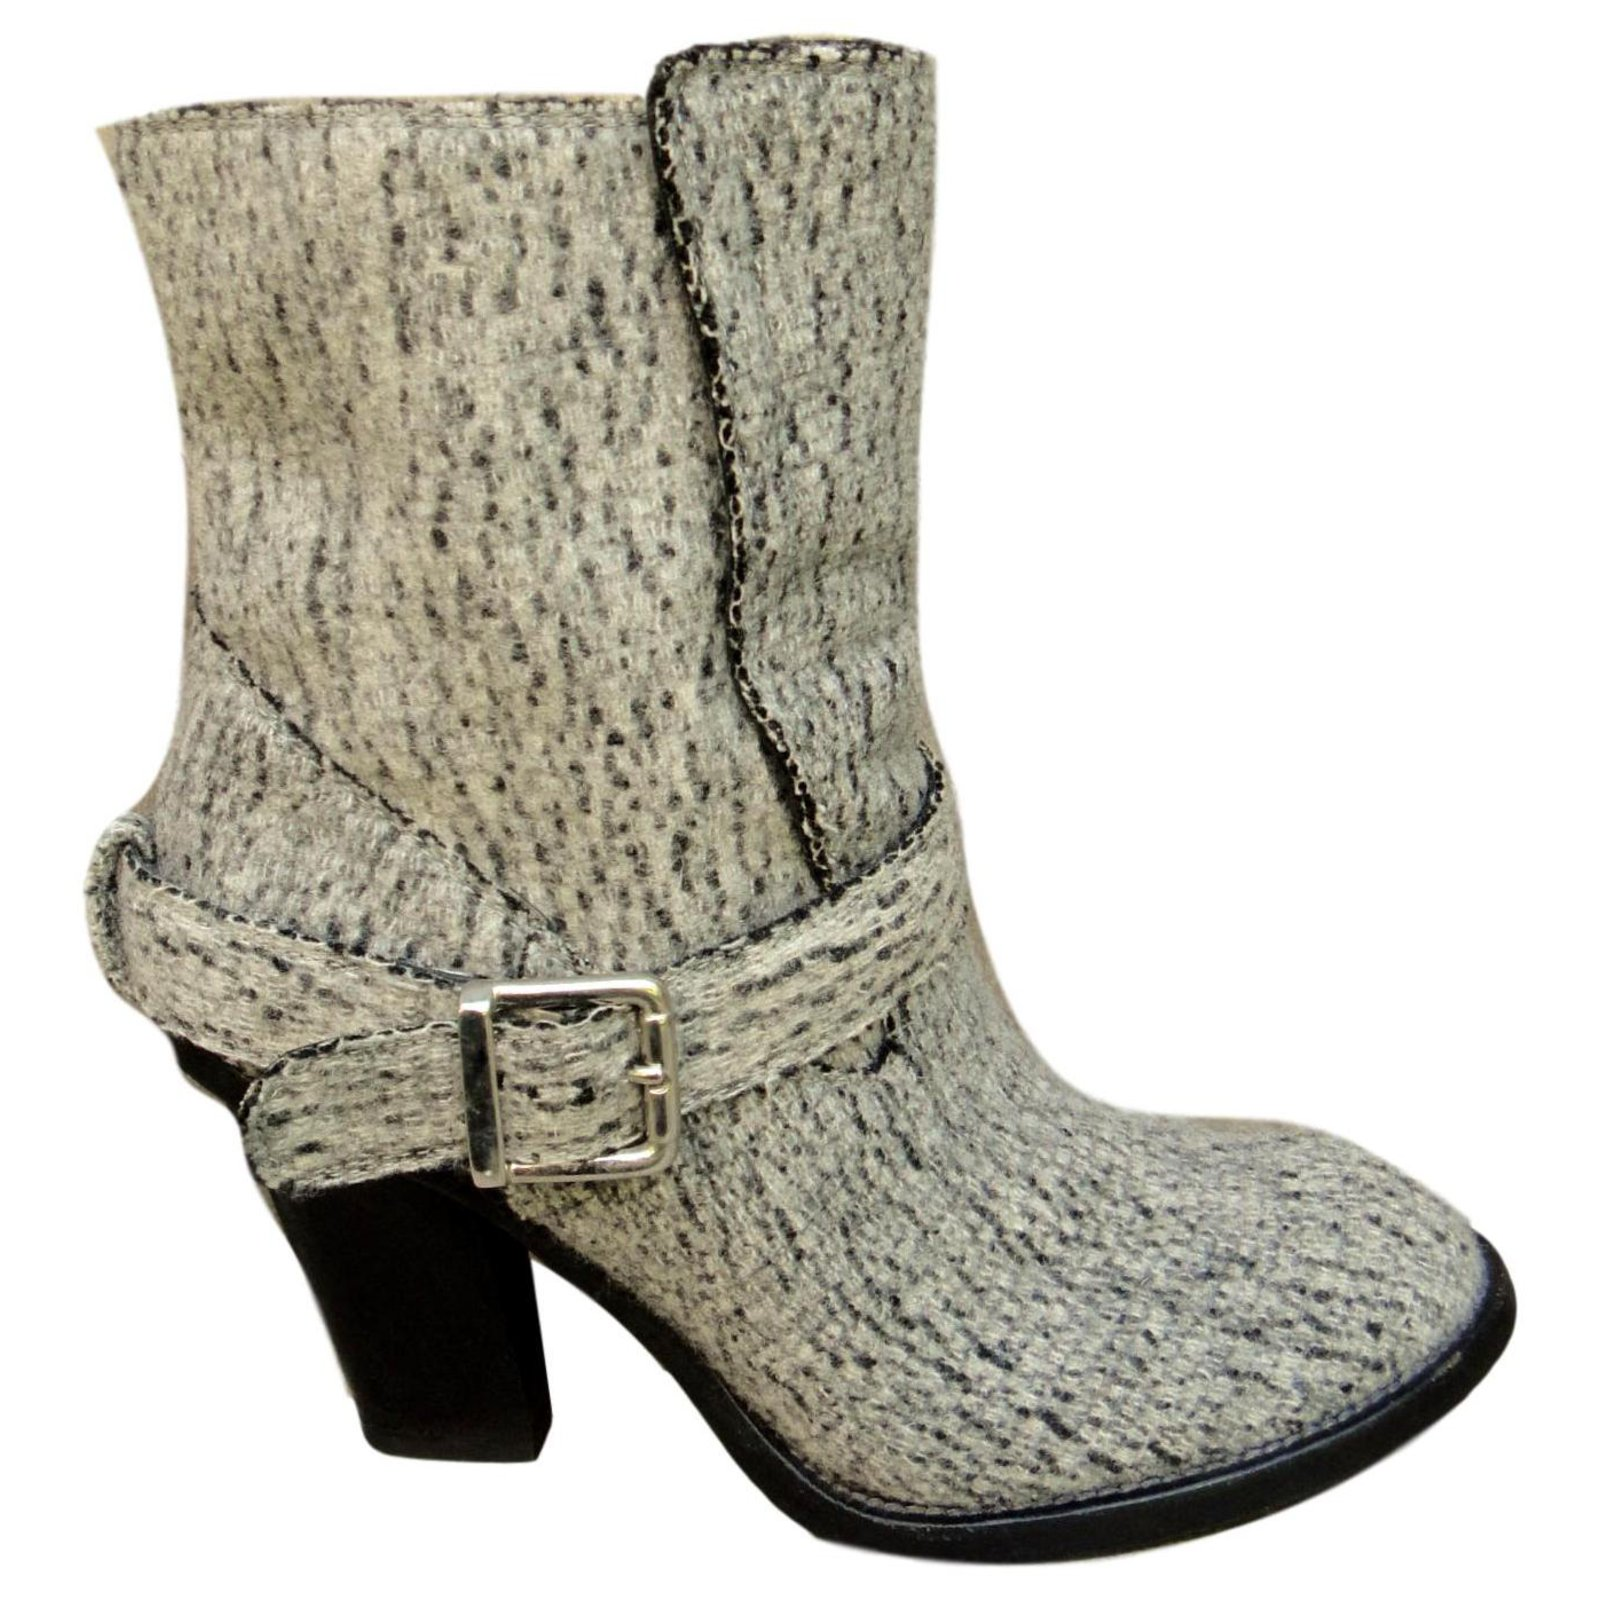 buy online offer discounts release info on Chloé Chloé leather and felt boots Ankle Boots Leather,Wool Grey ...